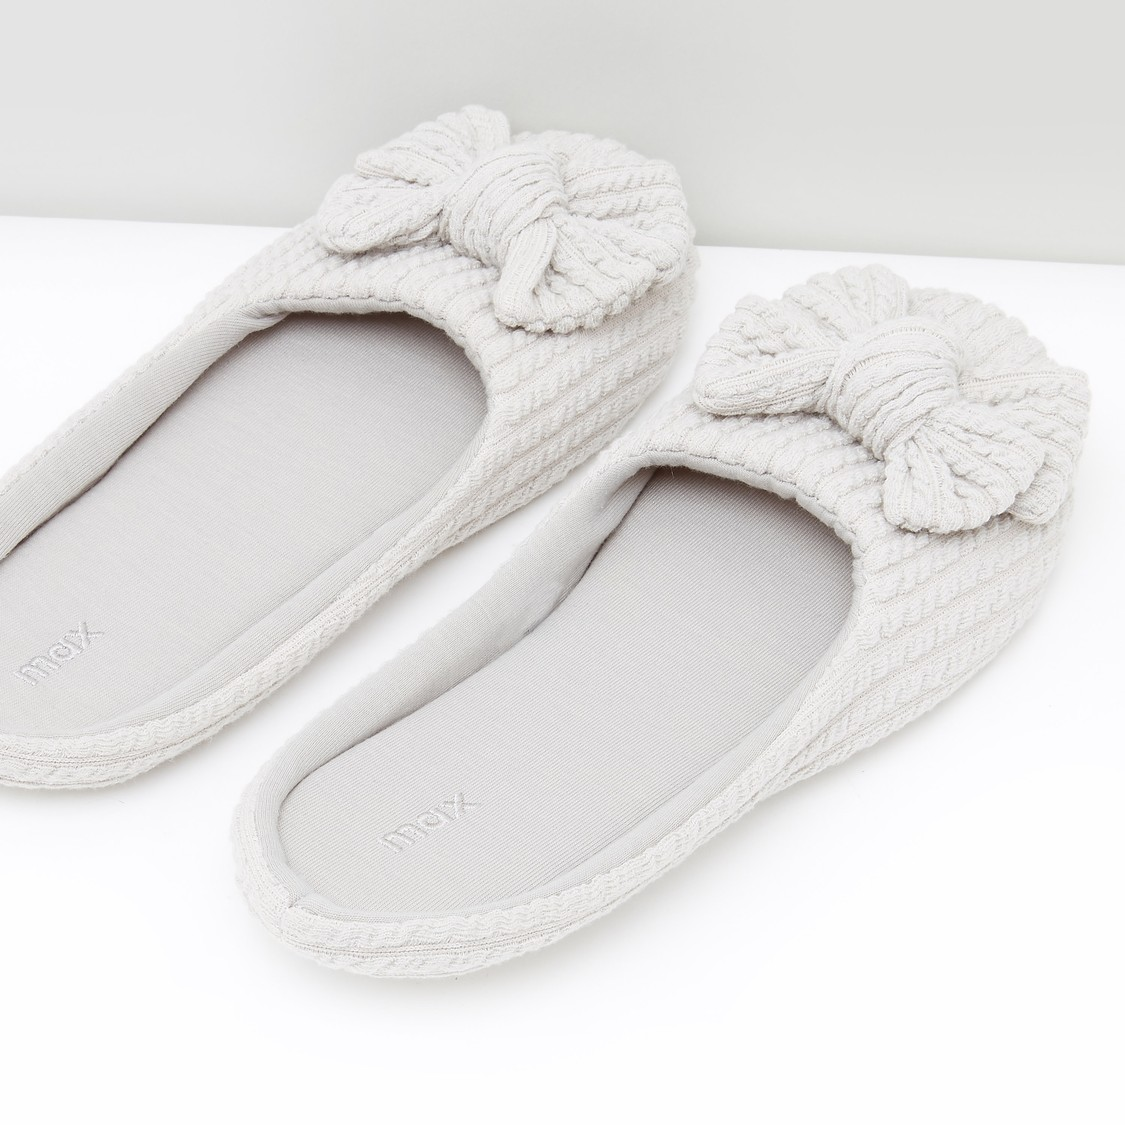 Textured Slip-On Slides with Bow Applique